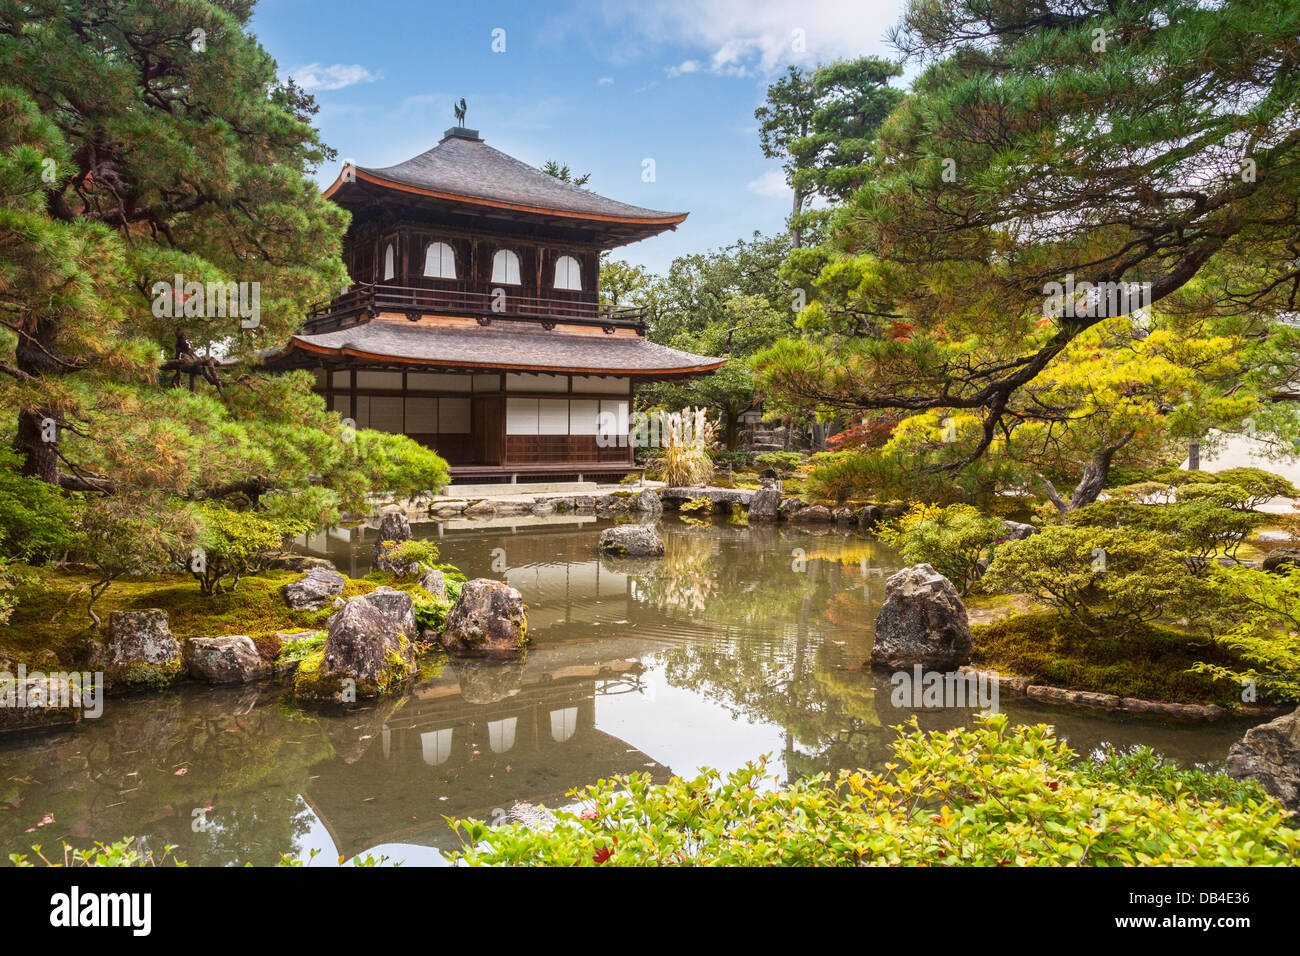 The Silver Pavilion of the temple of Ginkaku-ji or Jisho-ji in Kyoto, seen in autumn. This Zen Buddhist temple is - Stock Image